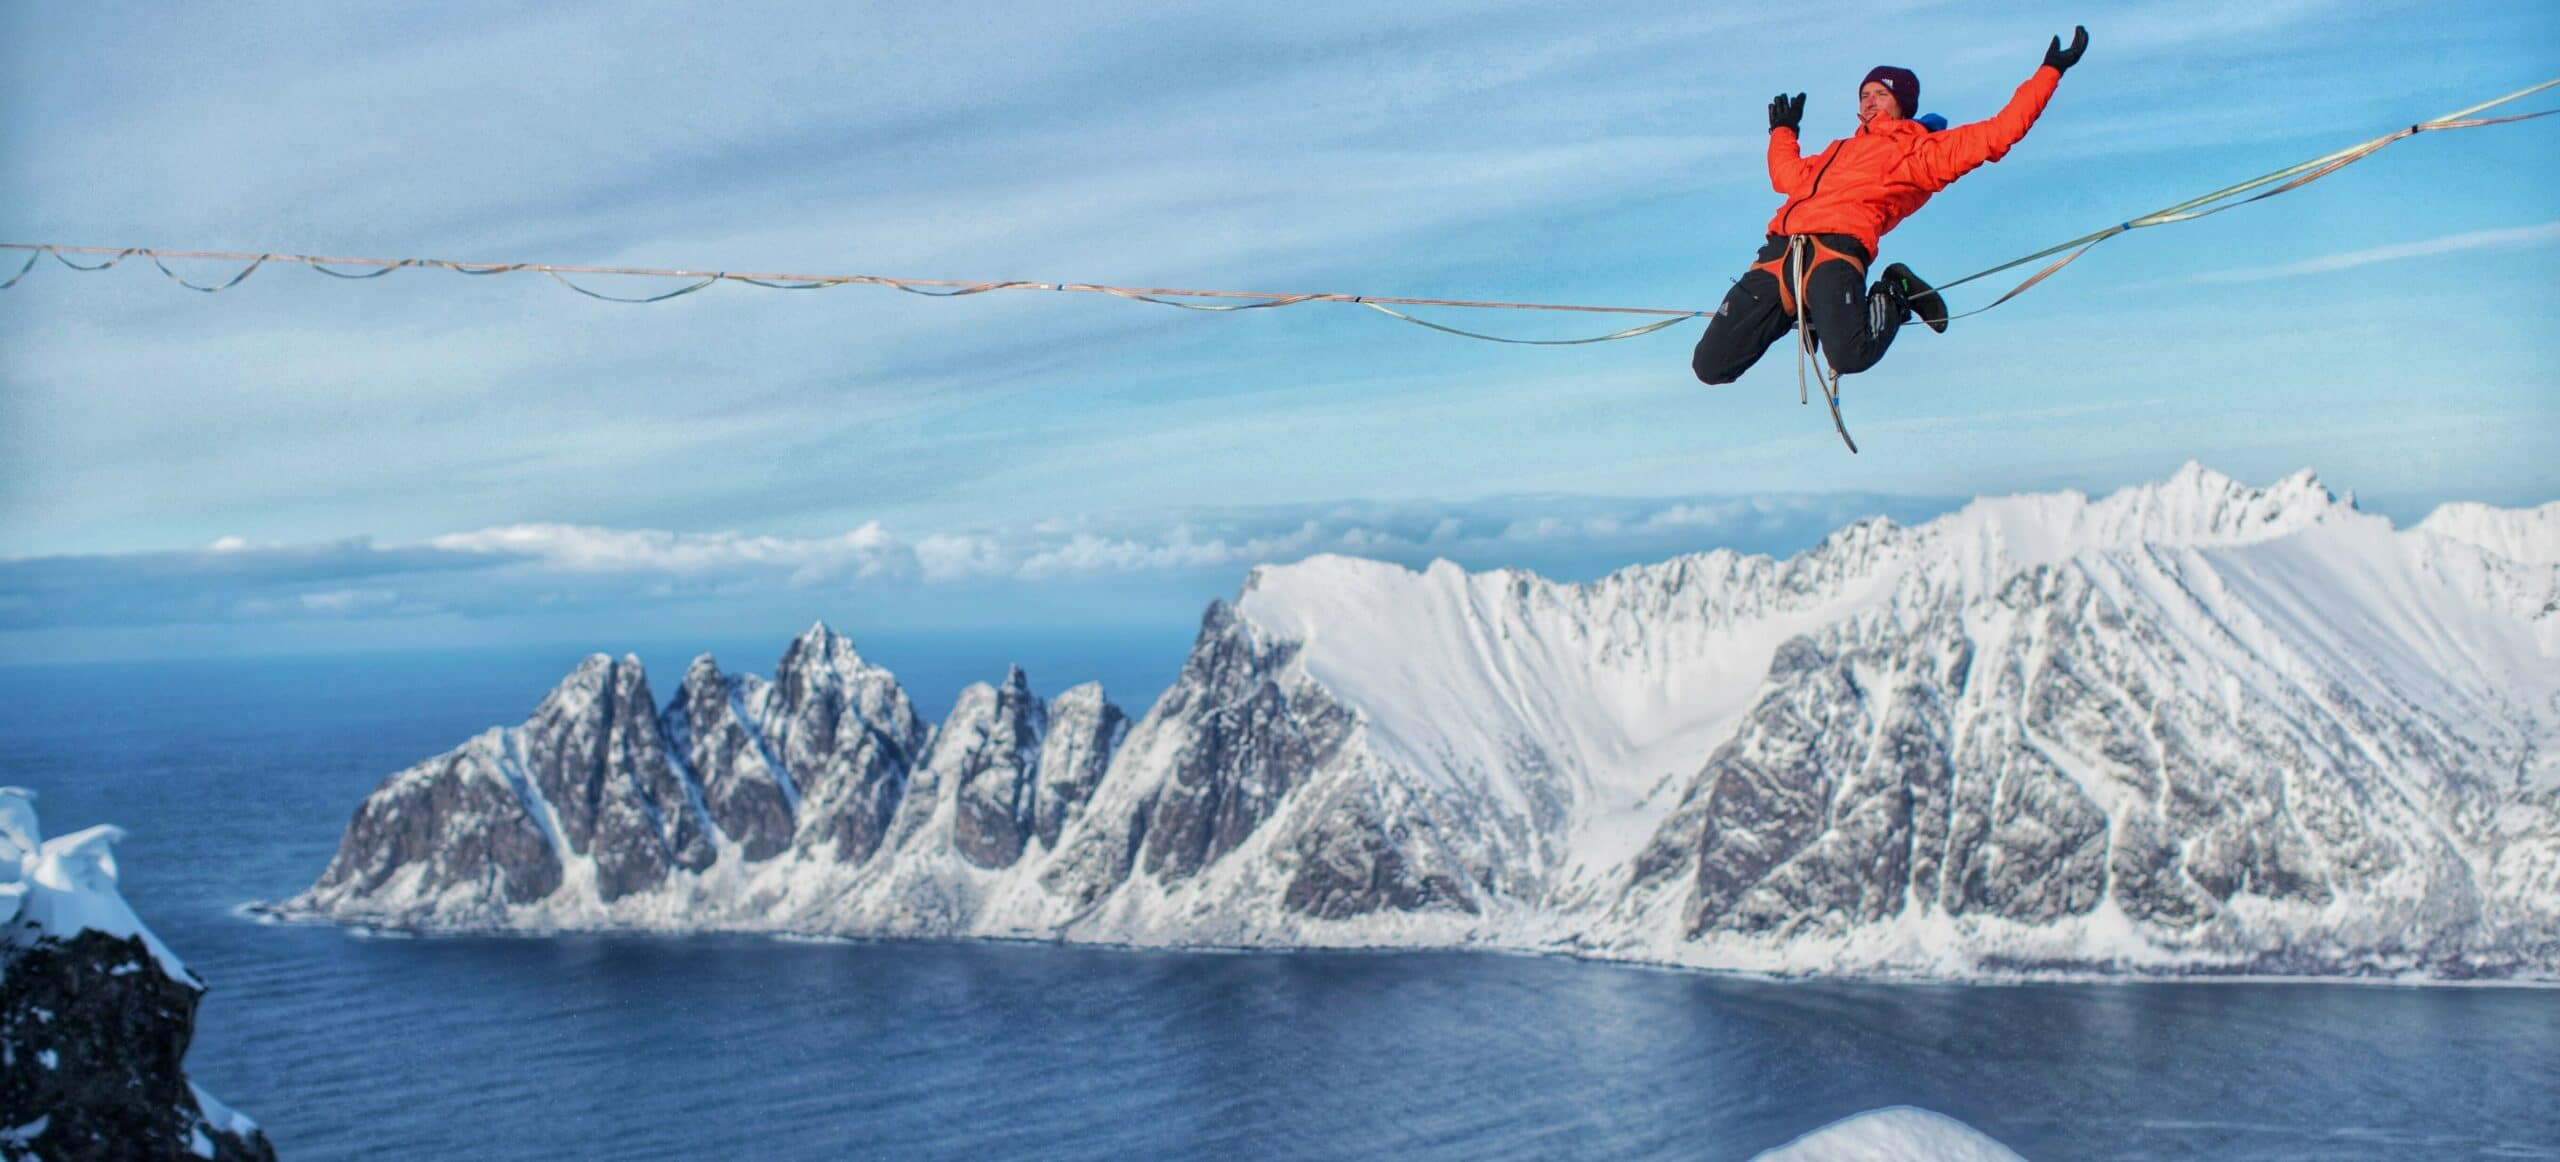 A man in an orange jacket sits on a tight rope with his hands outstretched. Huge snowy mountains and blue water loom below the high wire.